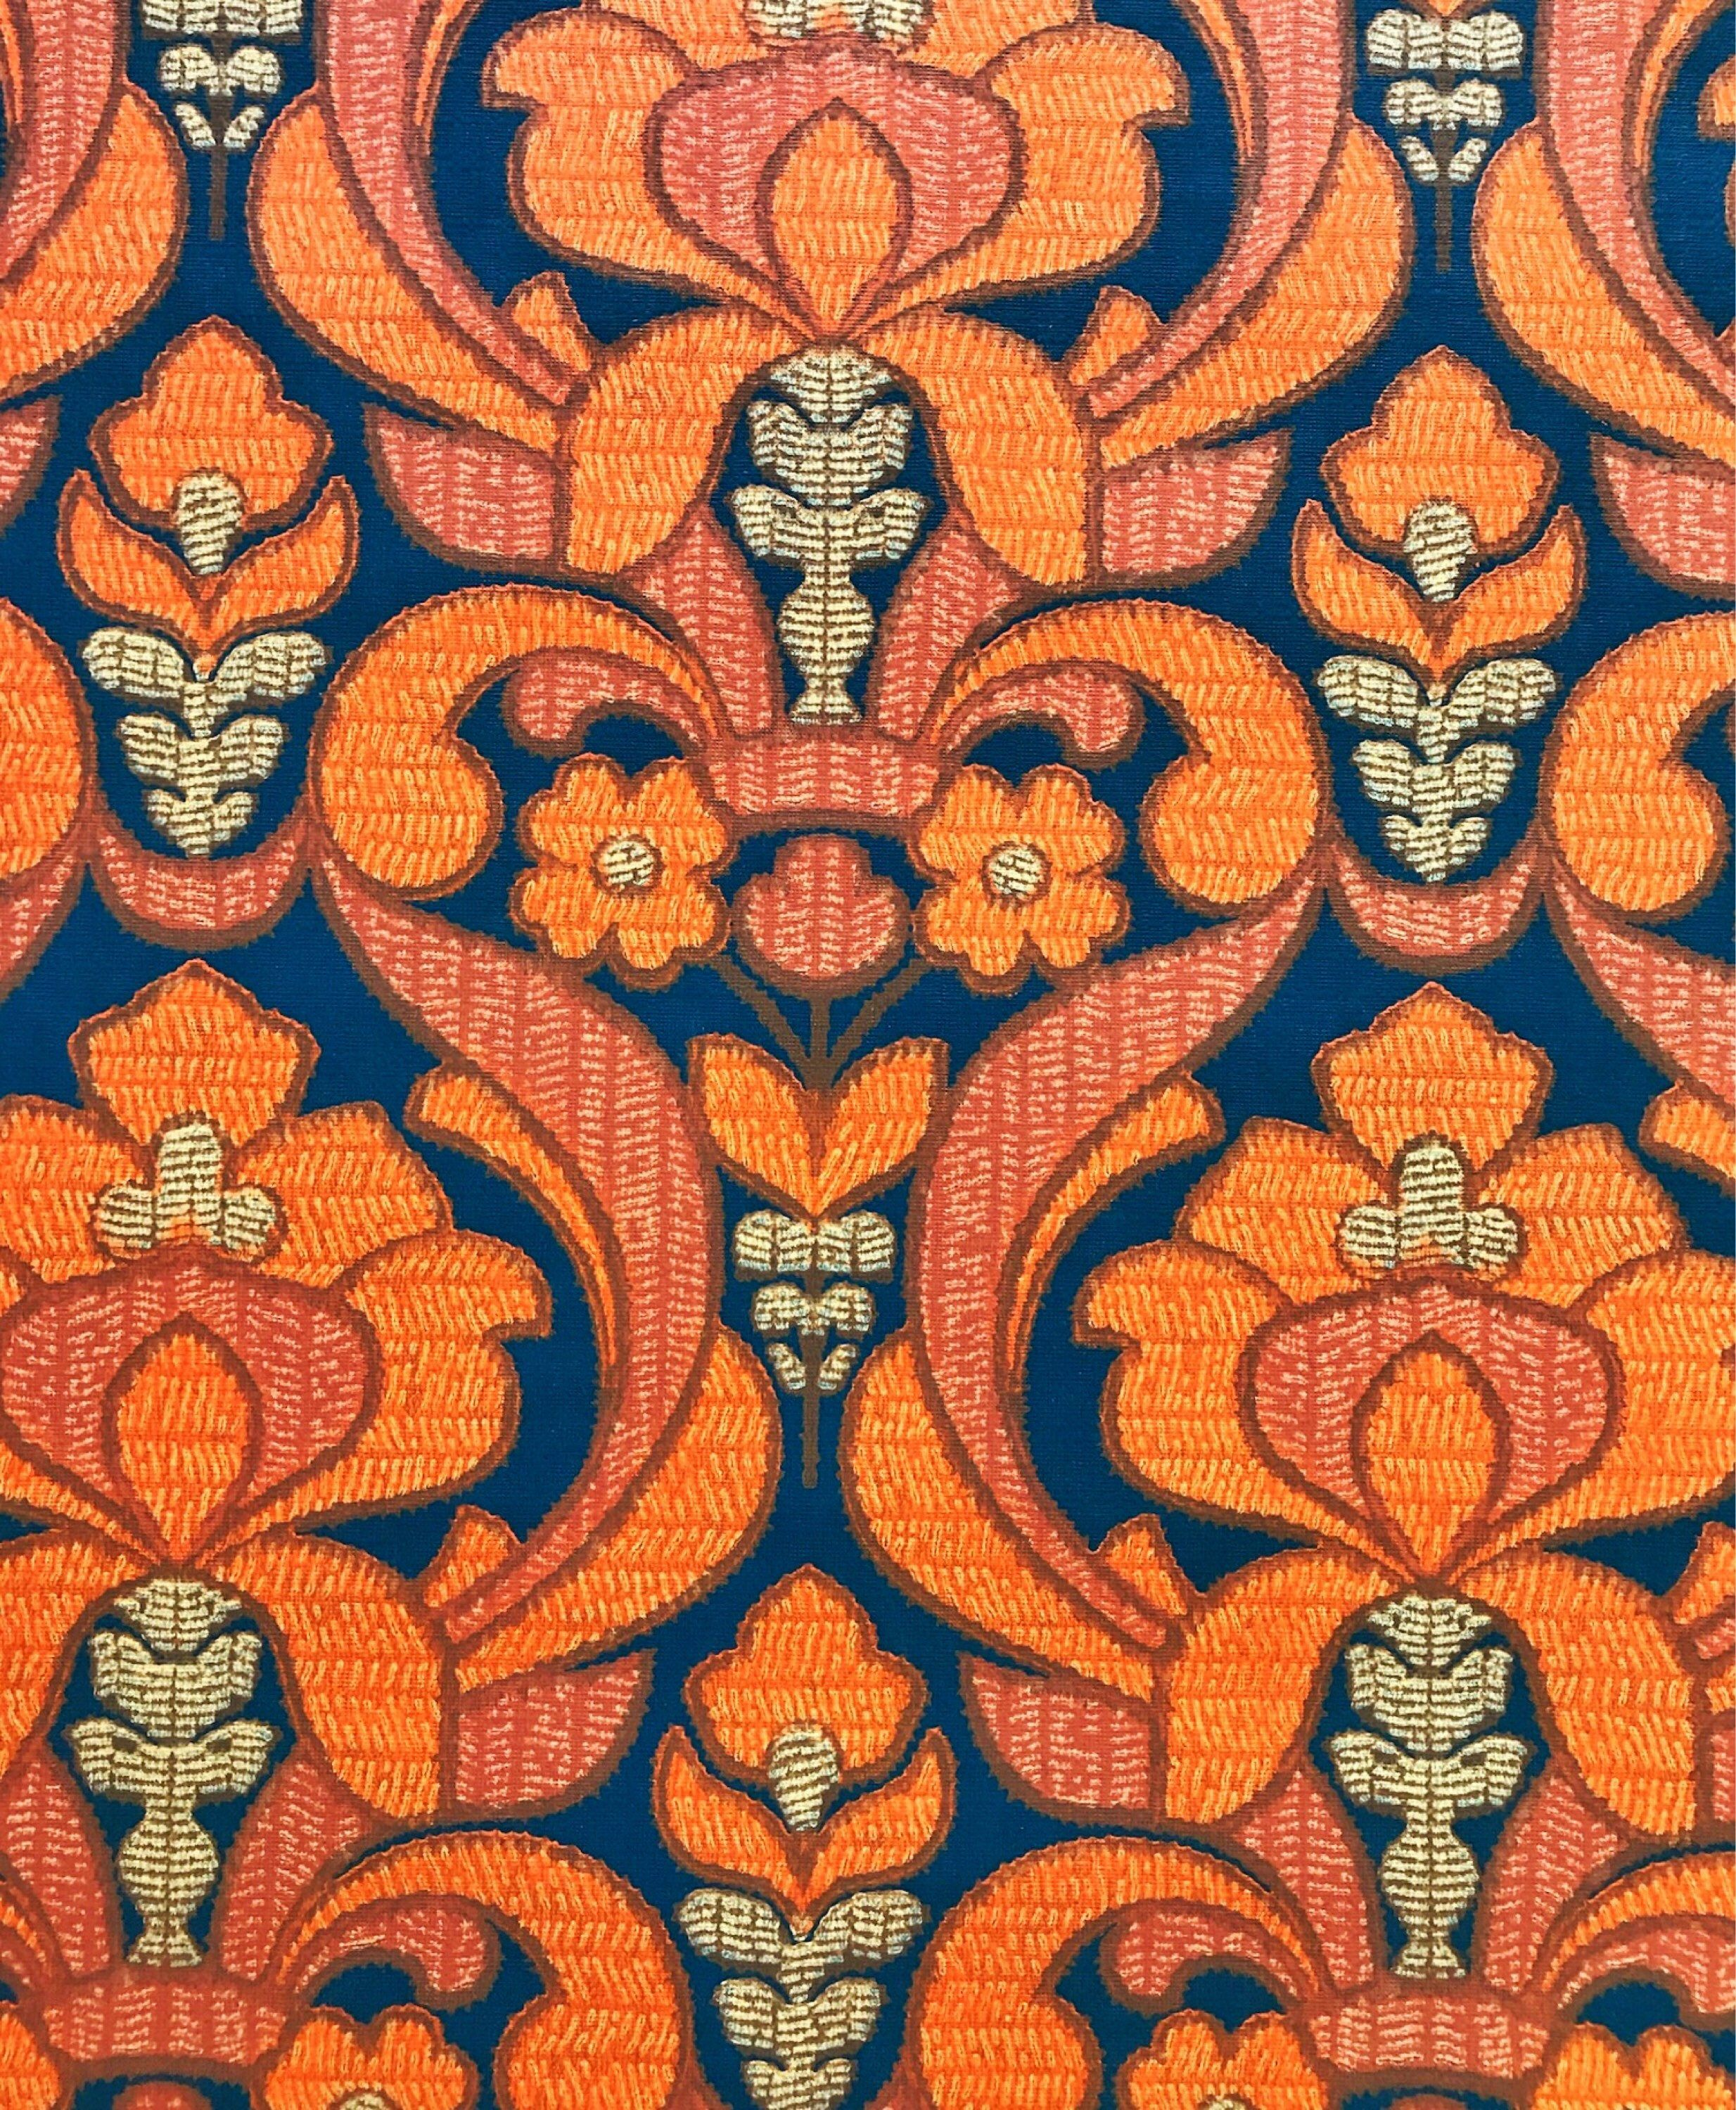 50s vintage swedish wallpaper with a bold floral print